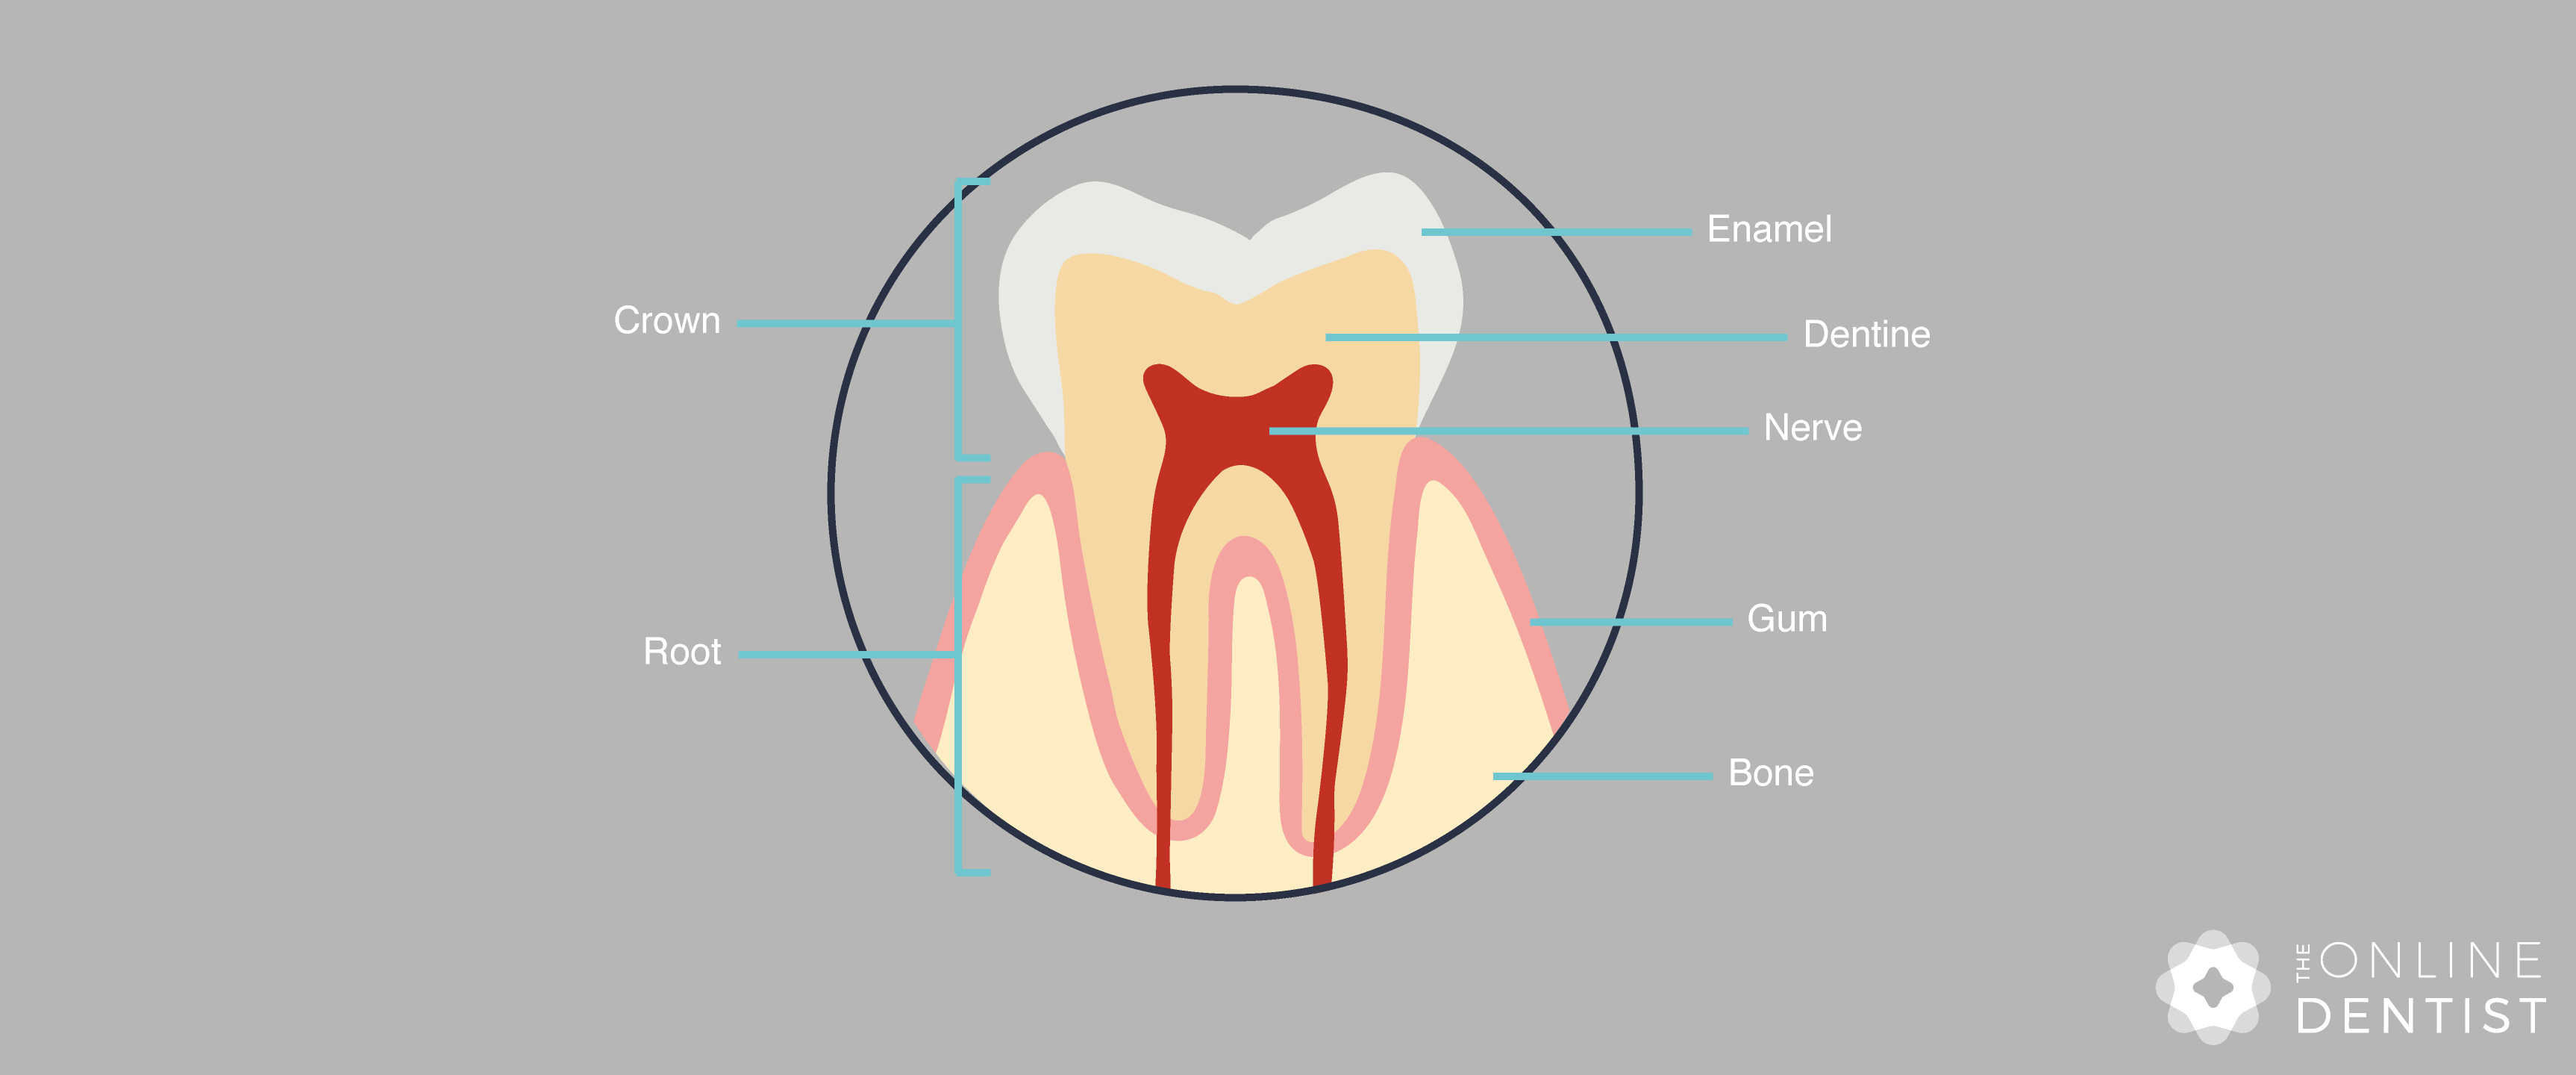 tooth-anatomy-diagram